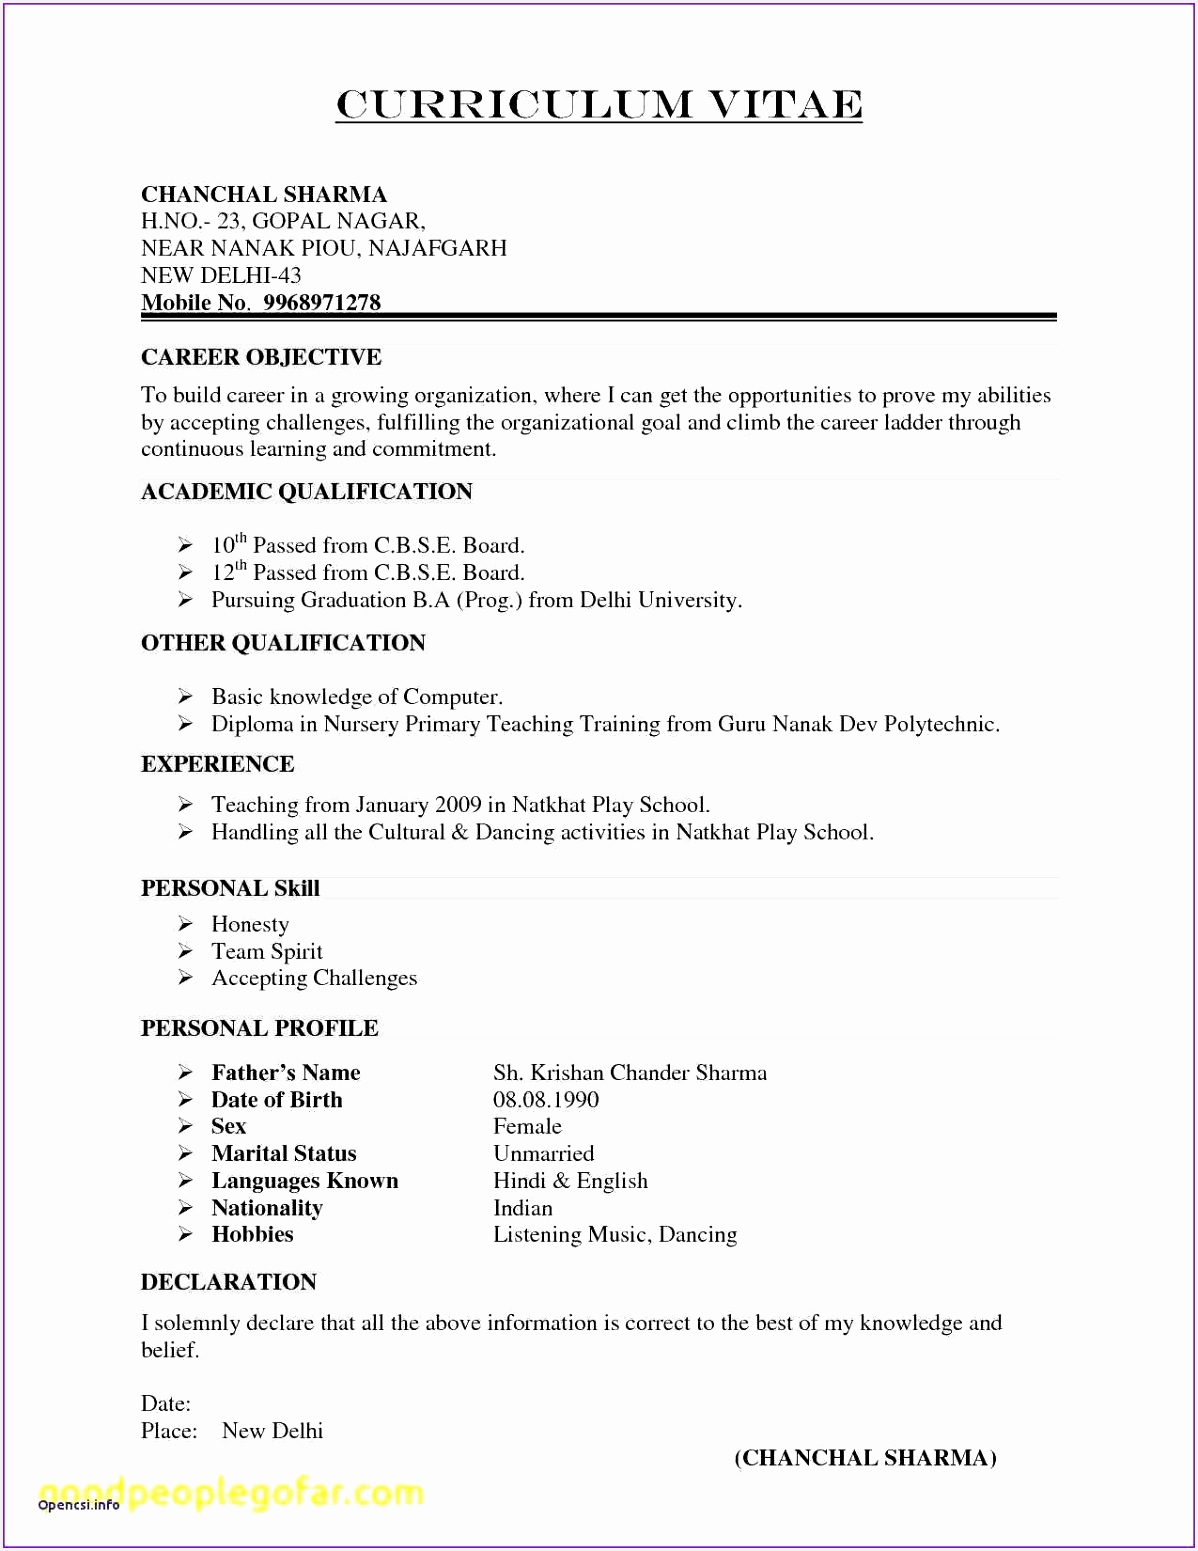 Microsoft Trainer Sample Resume Dcwig Elegant 53 Elegant Microsoft Word Free Resume Templates Awesome Resume Of Microsoft Trainer Sample Resume Qxqav Fresh Sample Resume for Ca Articleship Training Free Template Design